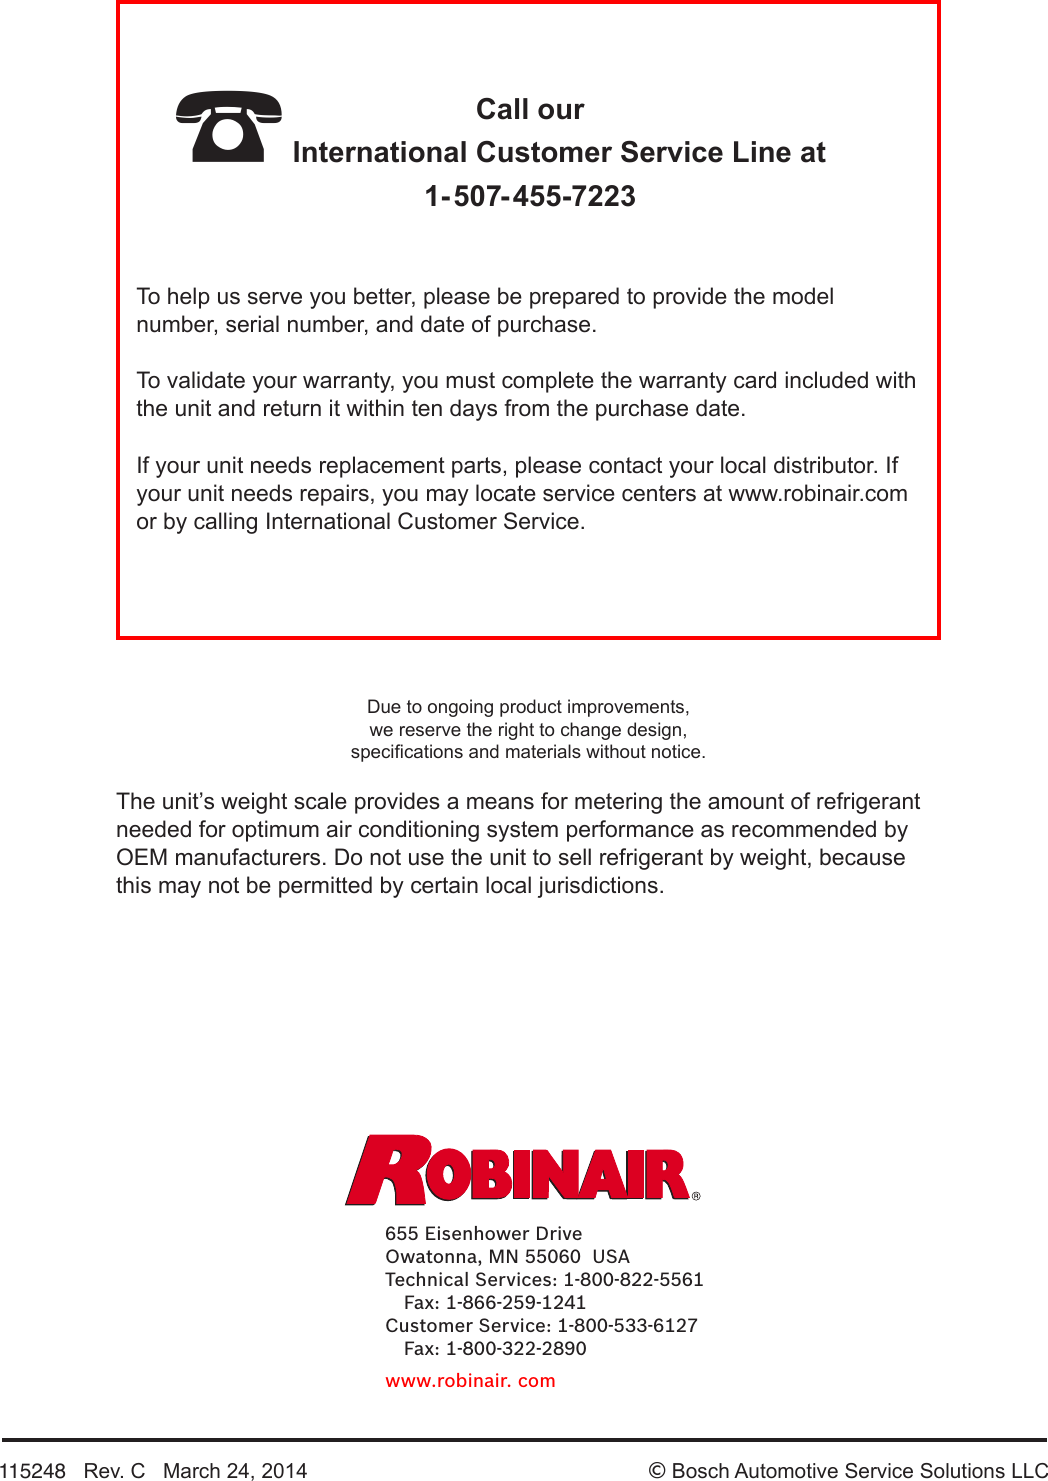 Robinair High Performance Vacuum Pump 15424 Users Manual Ac Unit Wiring Diagram Page 8 Of